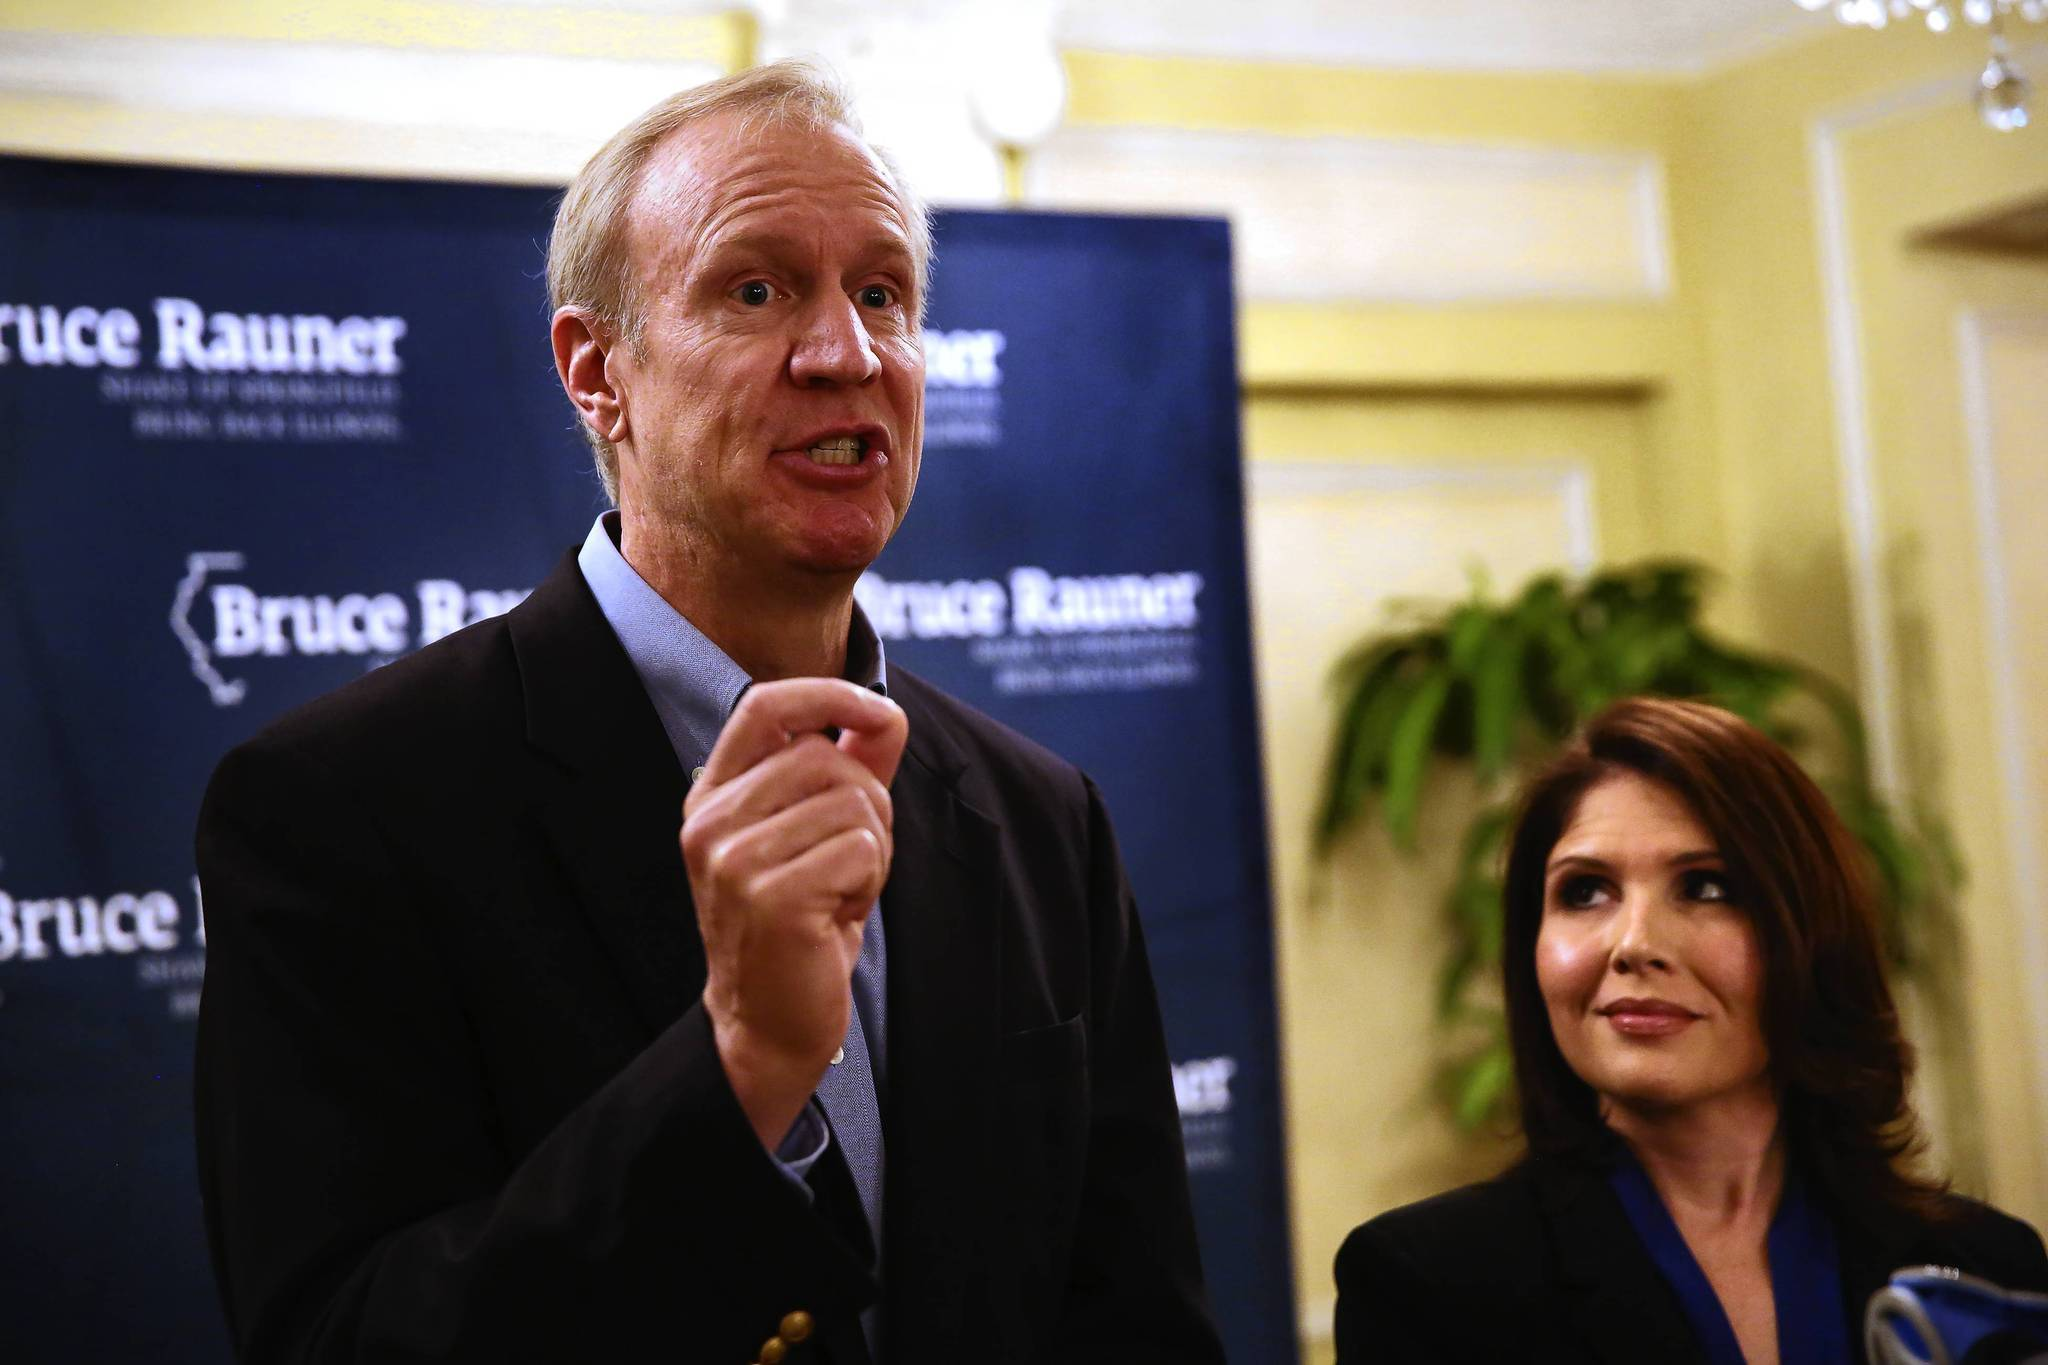 Republican candidate for Illinois governor Bruce Rauner said on Wednesday that he made a mistake when he proposed slashing the state's minimum wage by one dollar.